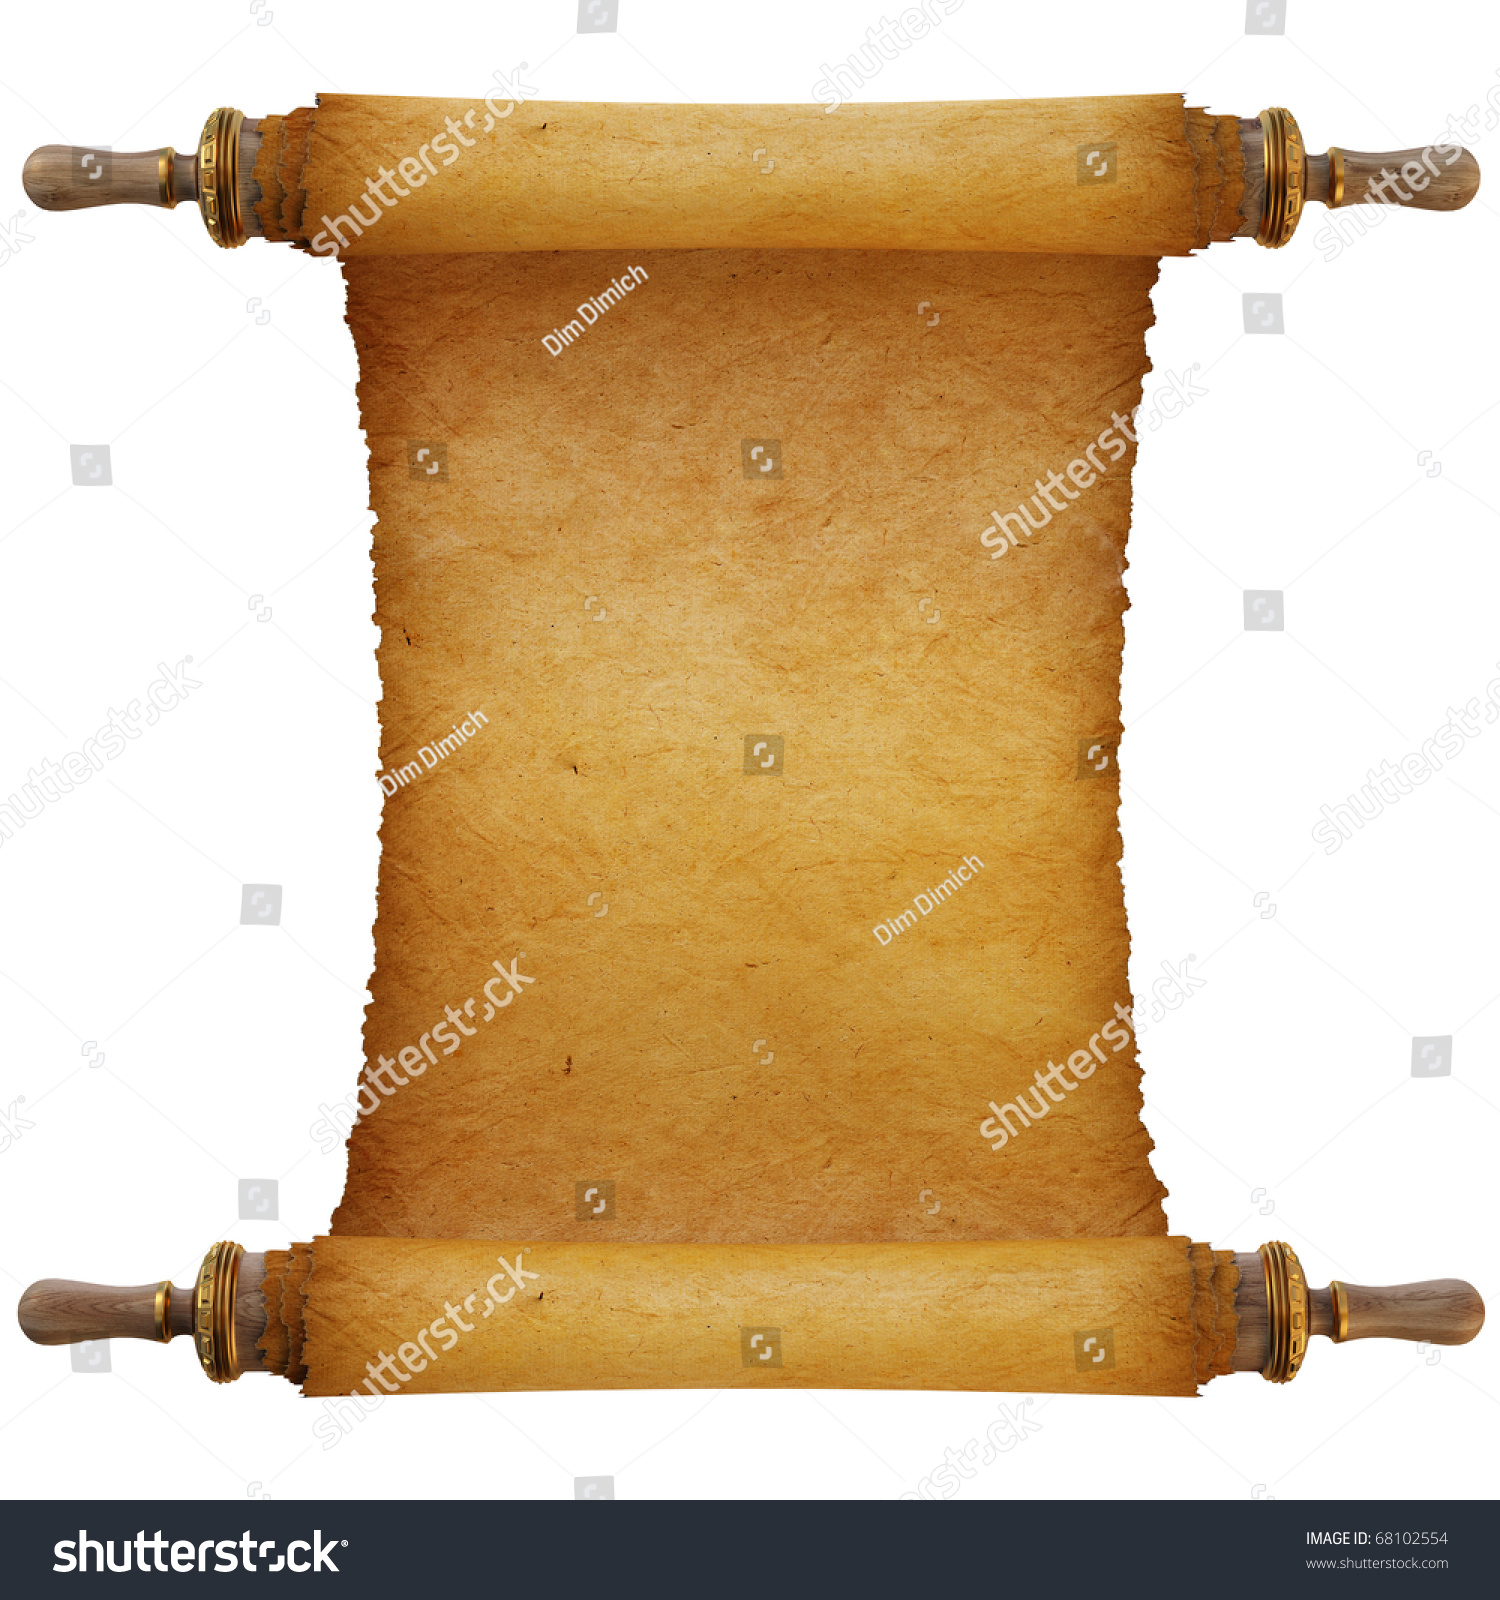 Antique Scrollimgs: Ancient Antique Scroll On White Background Stock